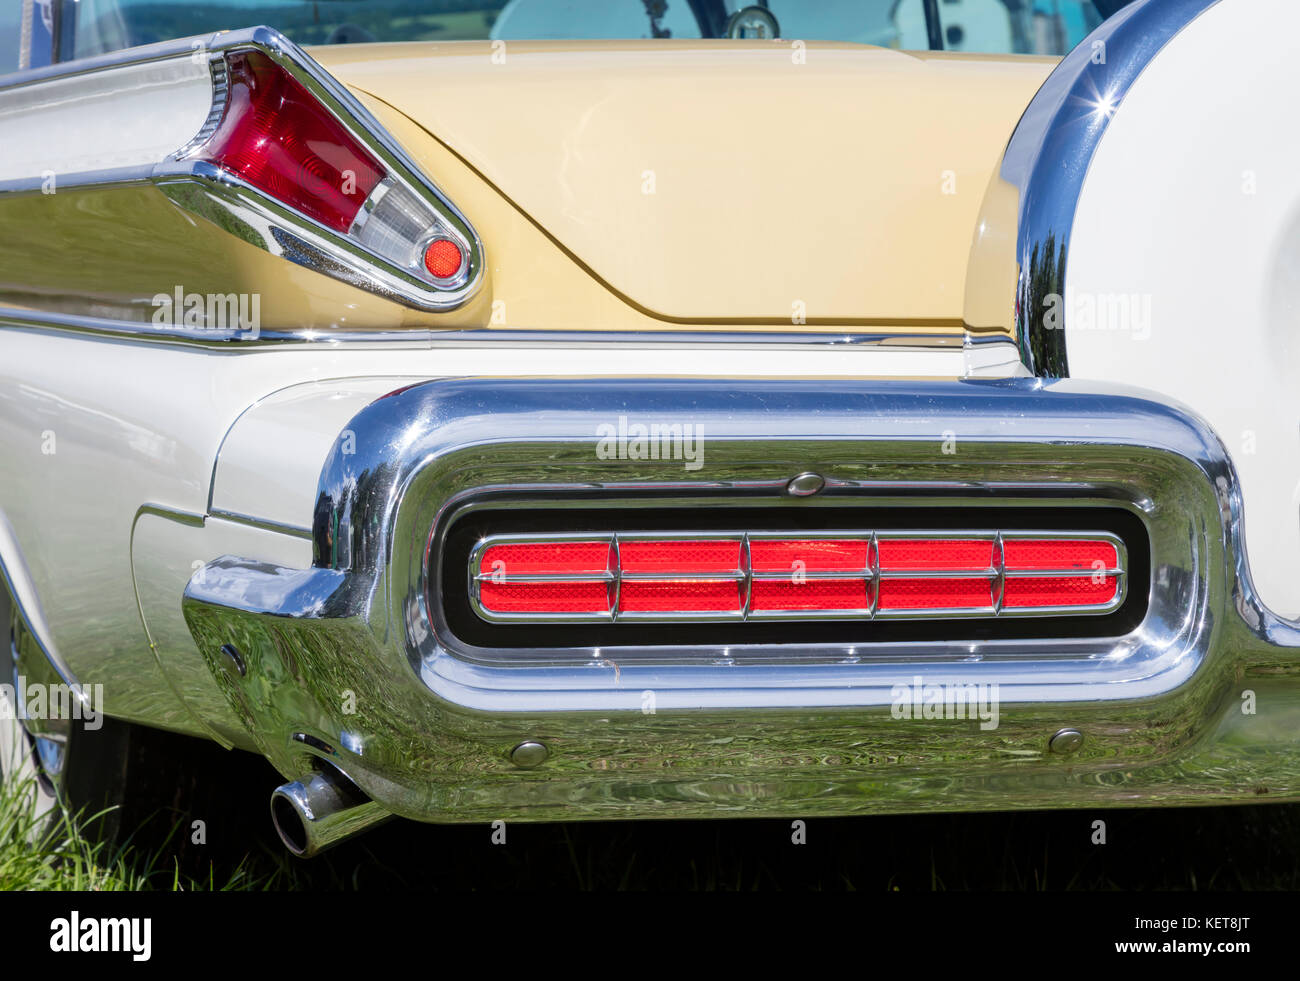 rear view chevy stock photos rear view chevy stock images alamy. Black Bedroom Furniture Sets. Home Design Ideas